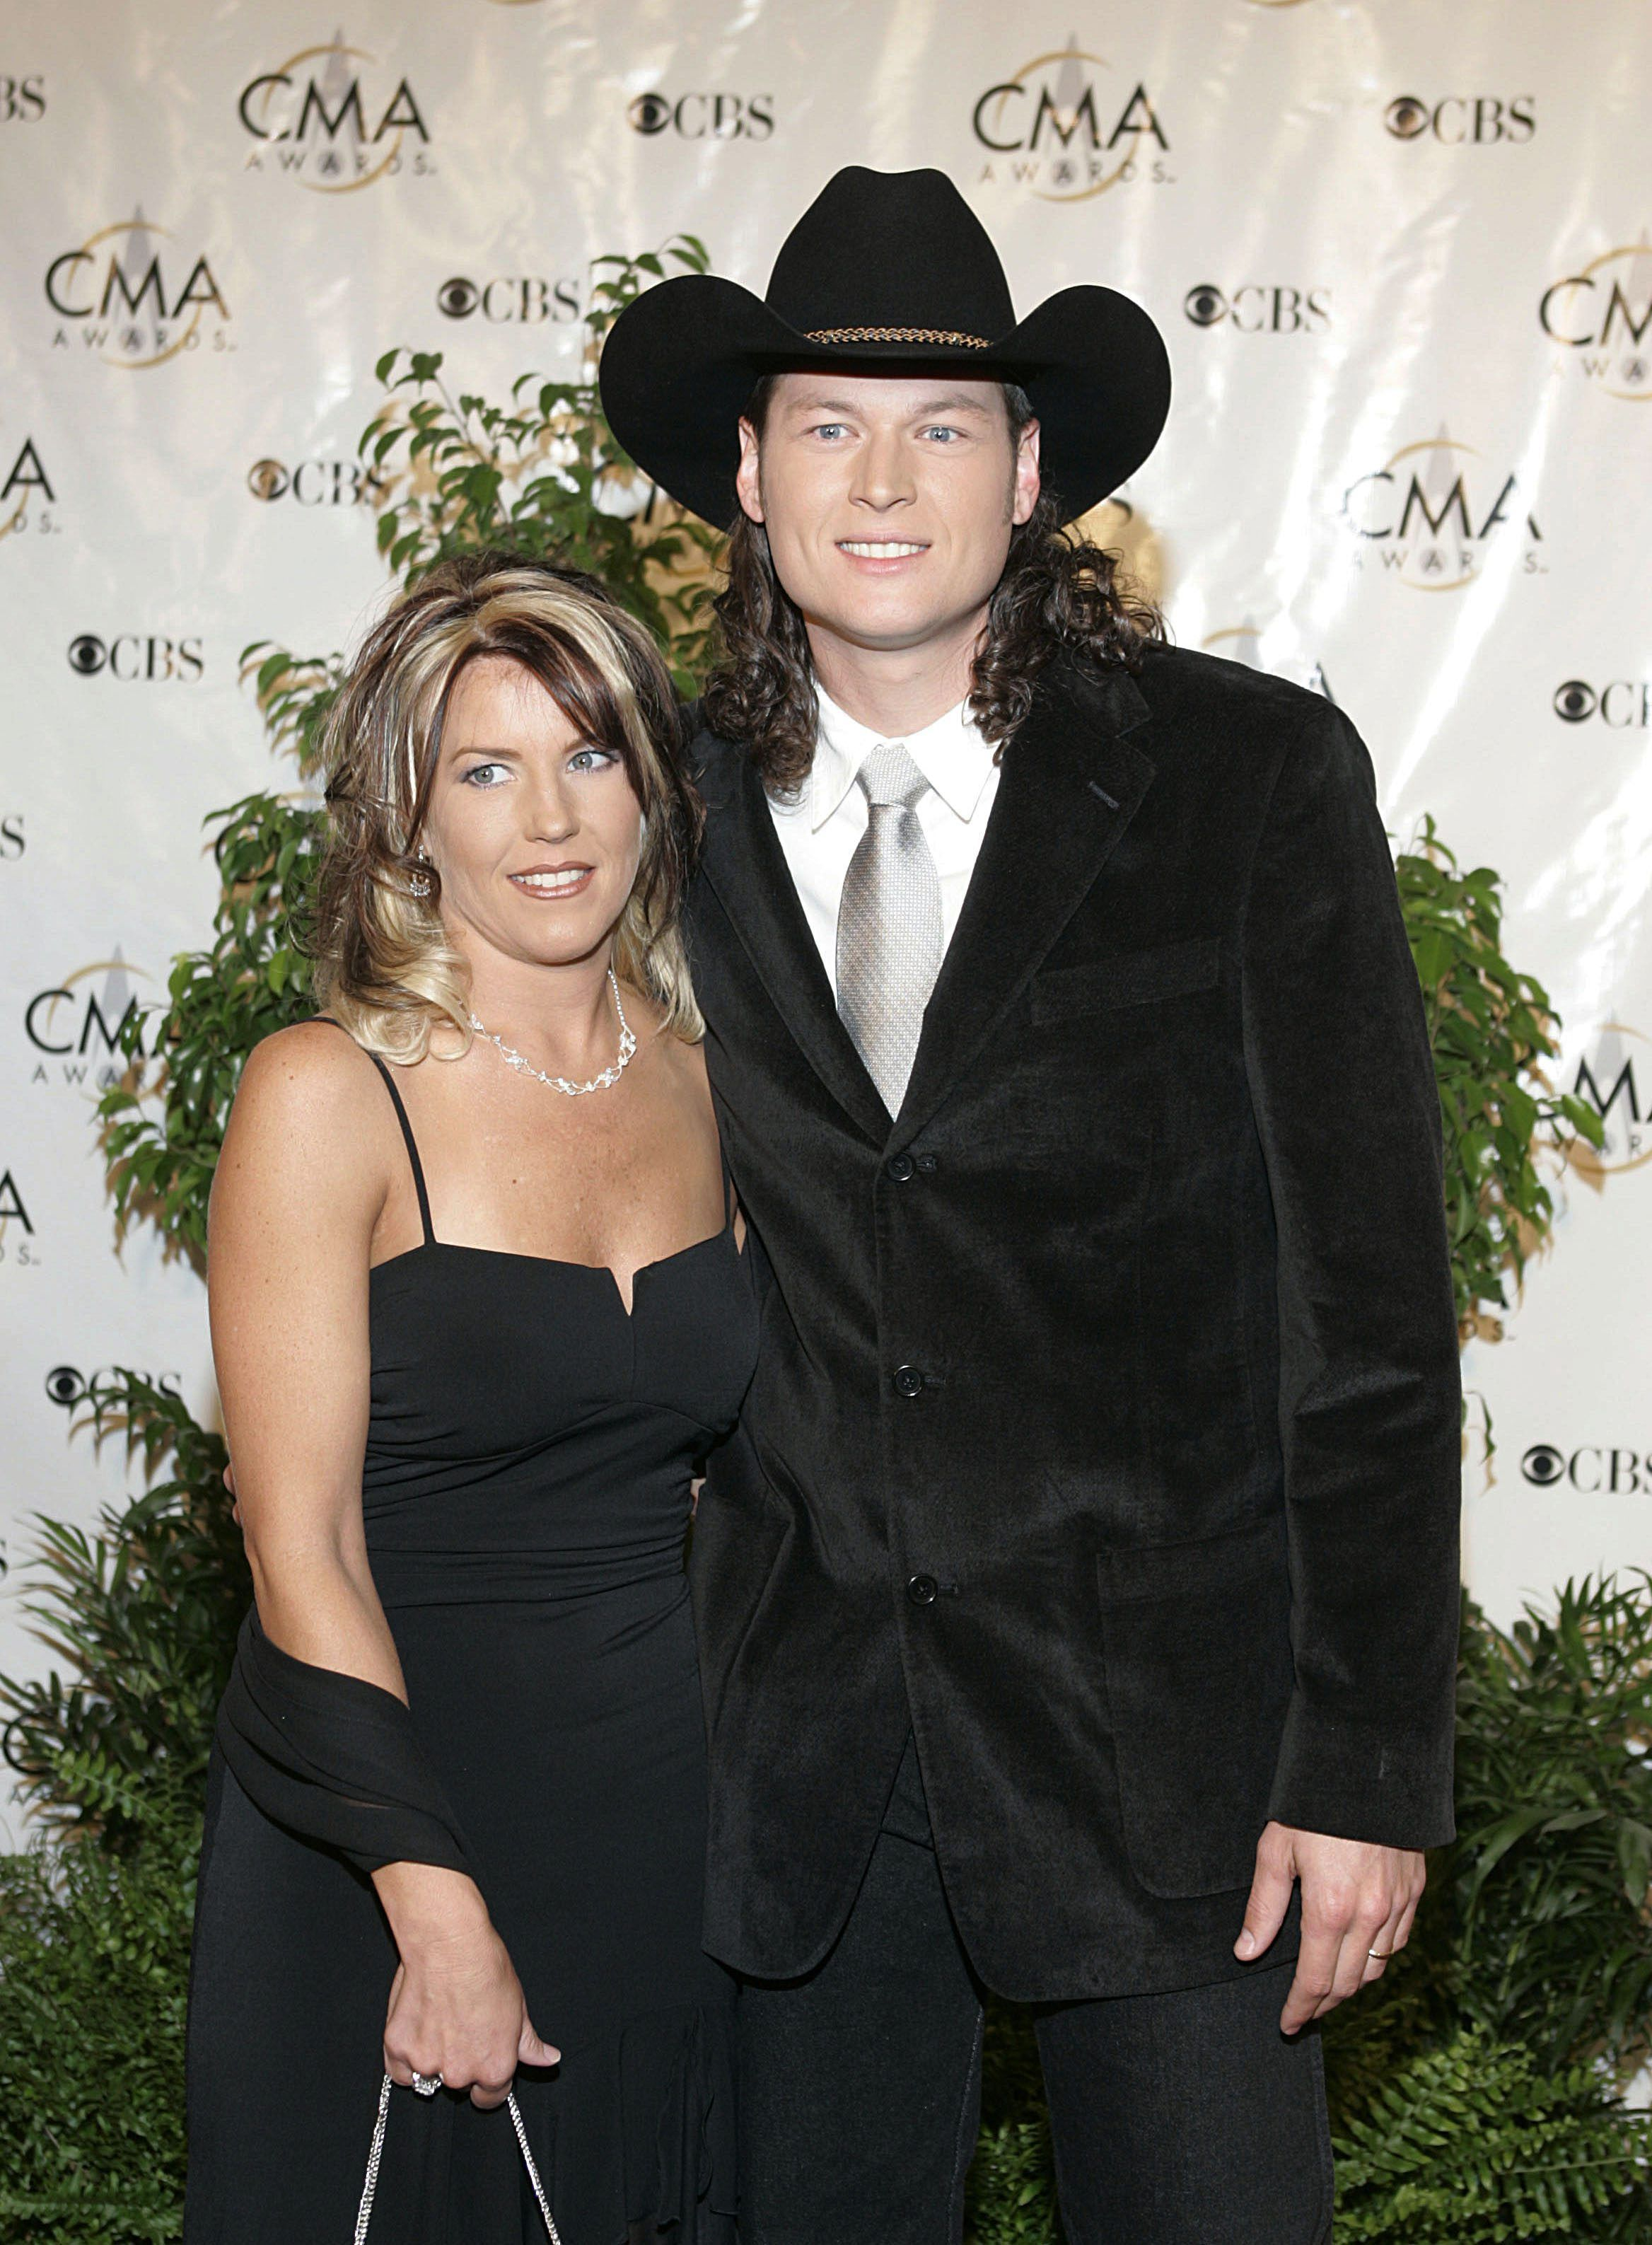 Country Music's 11 Most Shocking Cheating Scandals - http://www.fame10.com/entertainment/country-musics-11-most-shocking-cheating-scandals/